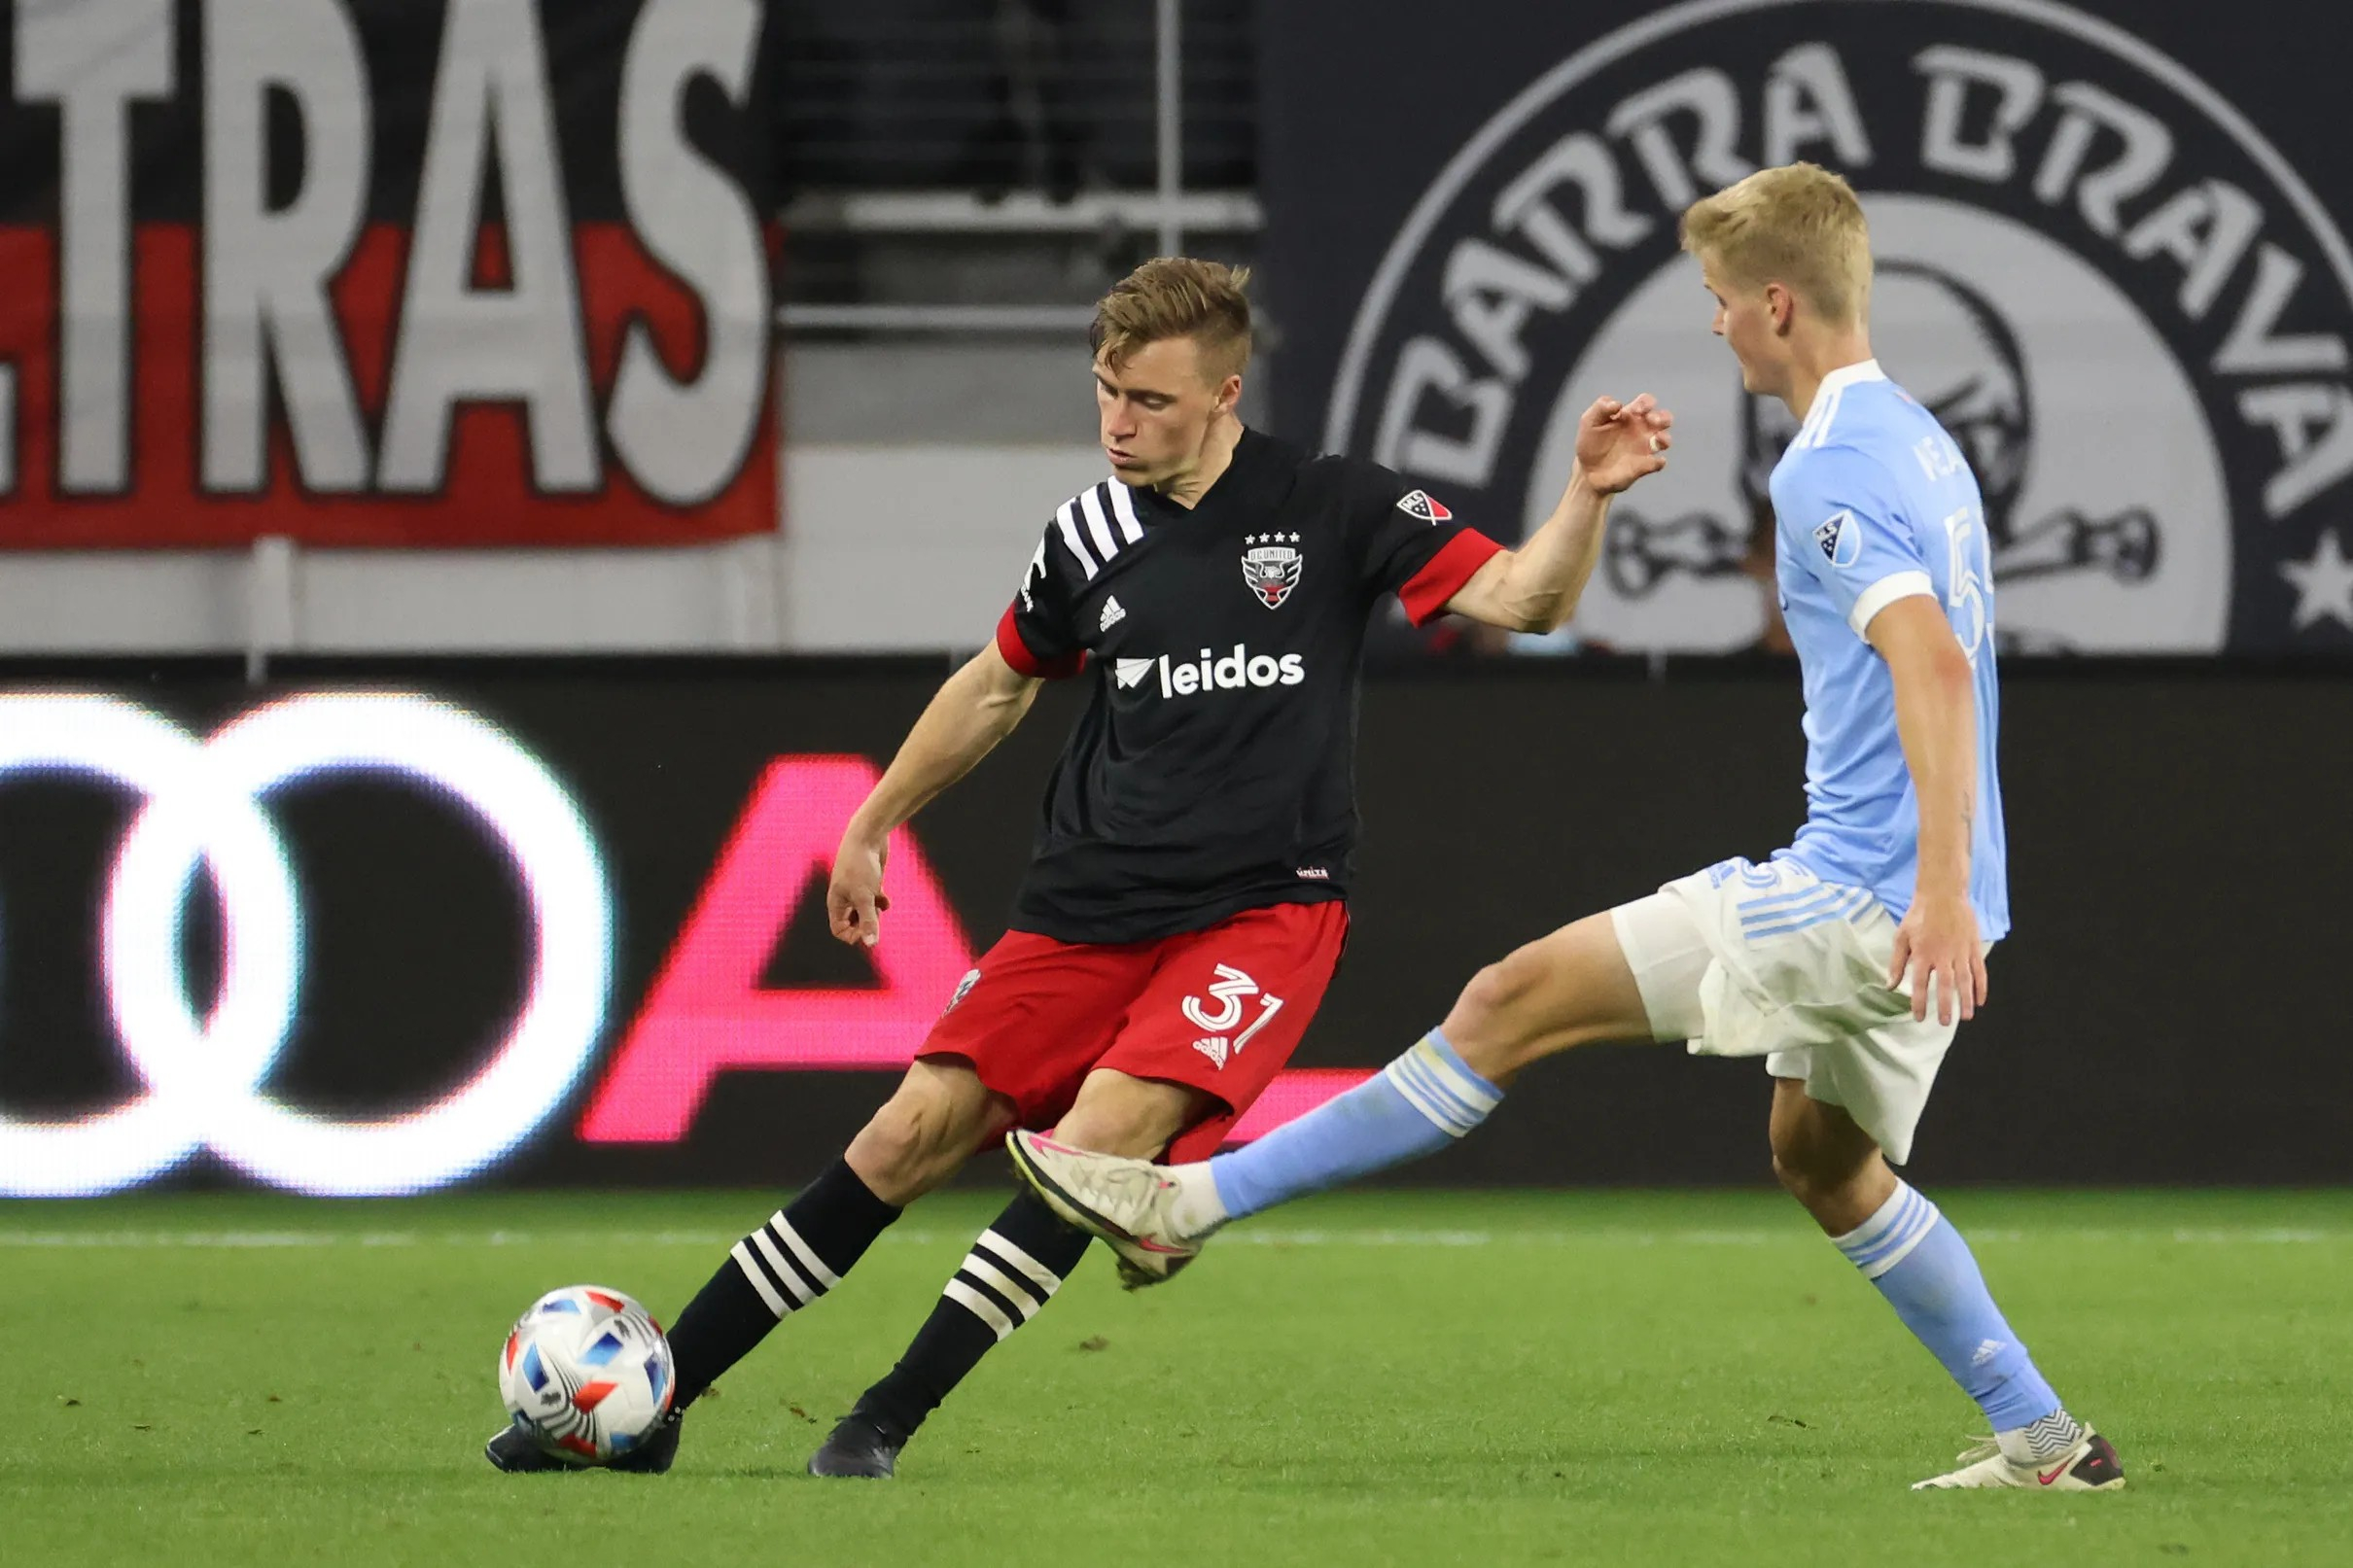 D.c. United Vs. Chicago Fire 2021: Time, Tv Schedule And In Houston Fire 2021 Schuele